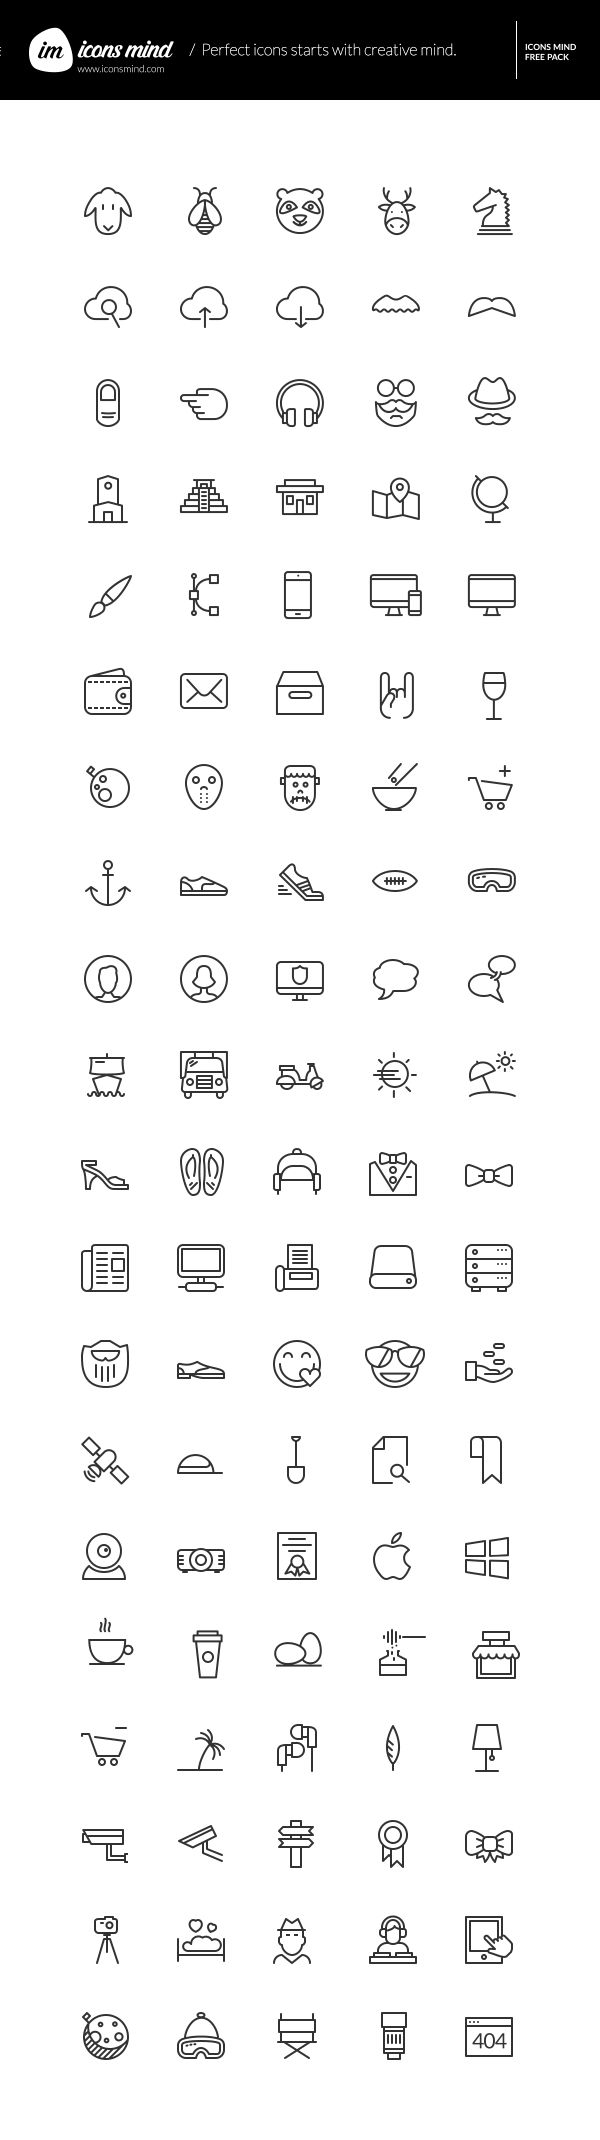 Download 100 Free Vector Icons IOS 8